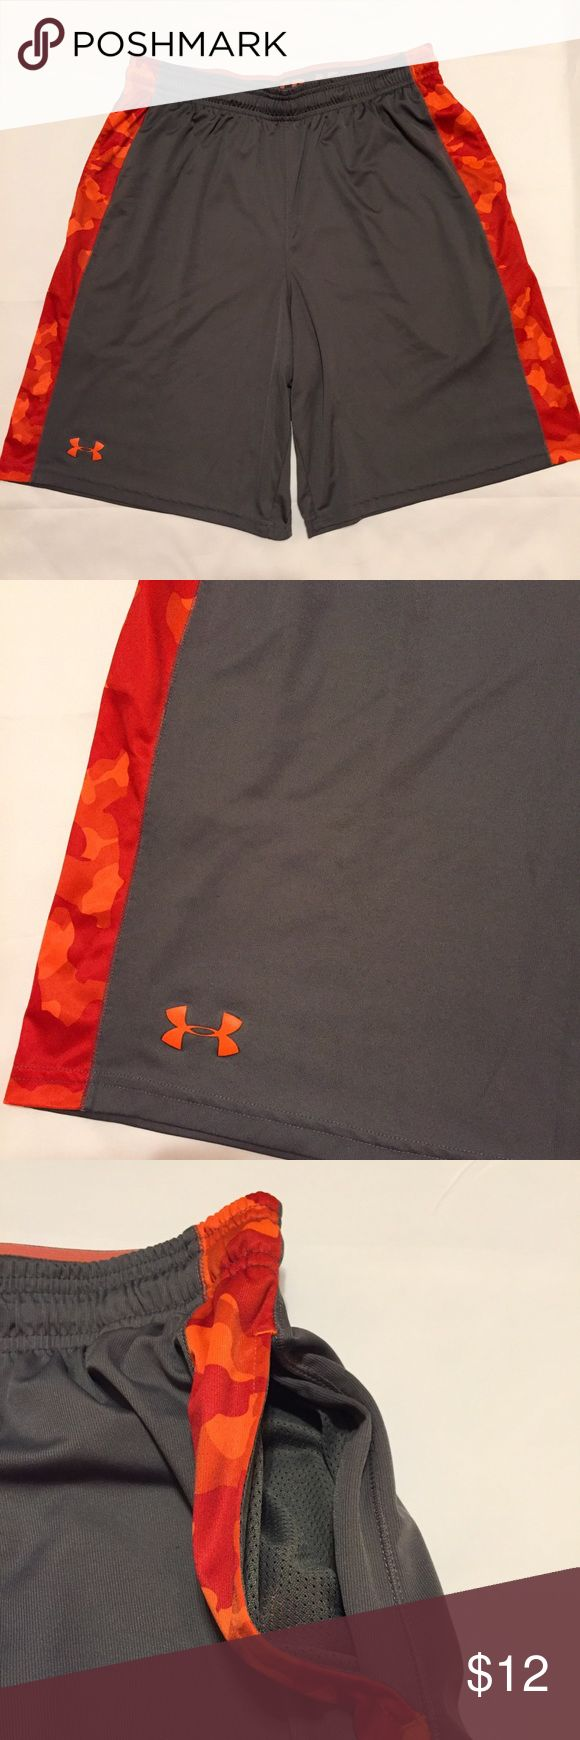 """Under Armour Loose Gray Athletic Shorts Size L Under Armour Loose Gray Athletic Shorts Size Large. Orange/red camo design on sides. Elasticized waist and adjustable drawstring. Pockets on sides. Waist: 15.5"""" Length: 21"""" Under Armour Shorts Athletic"""